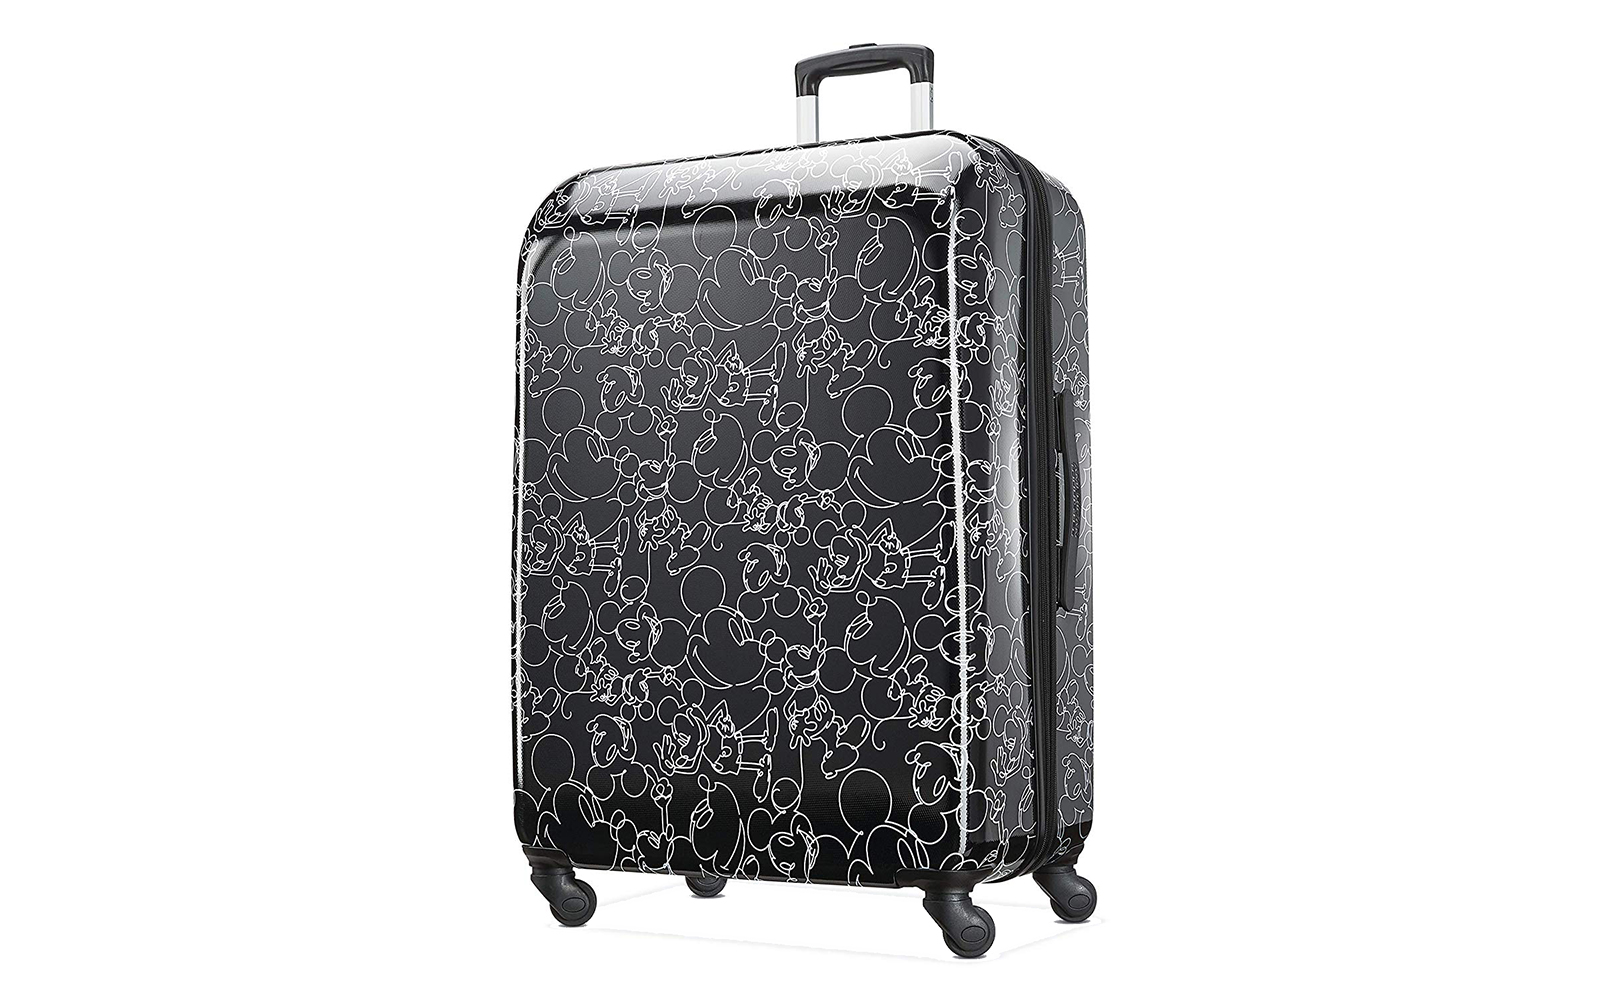 American Tourister Disney Hardside Spinner